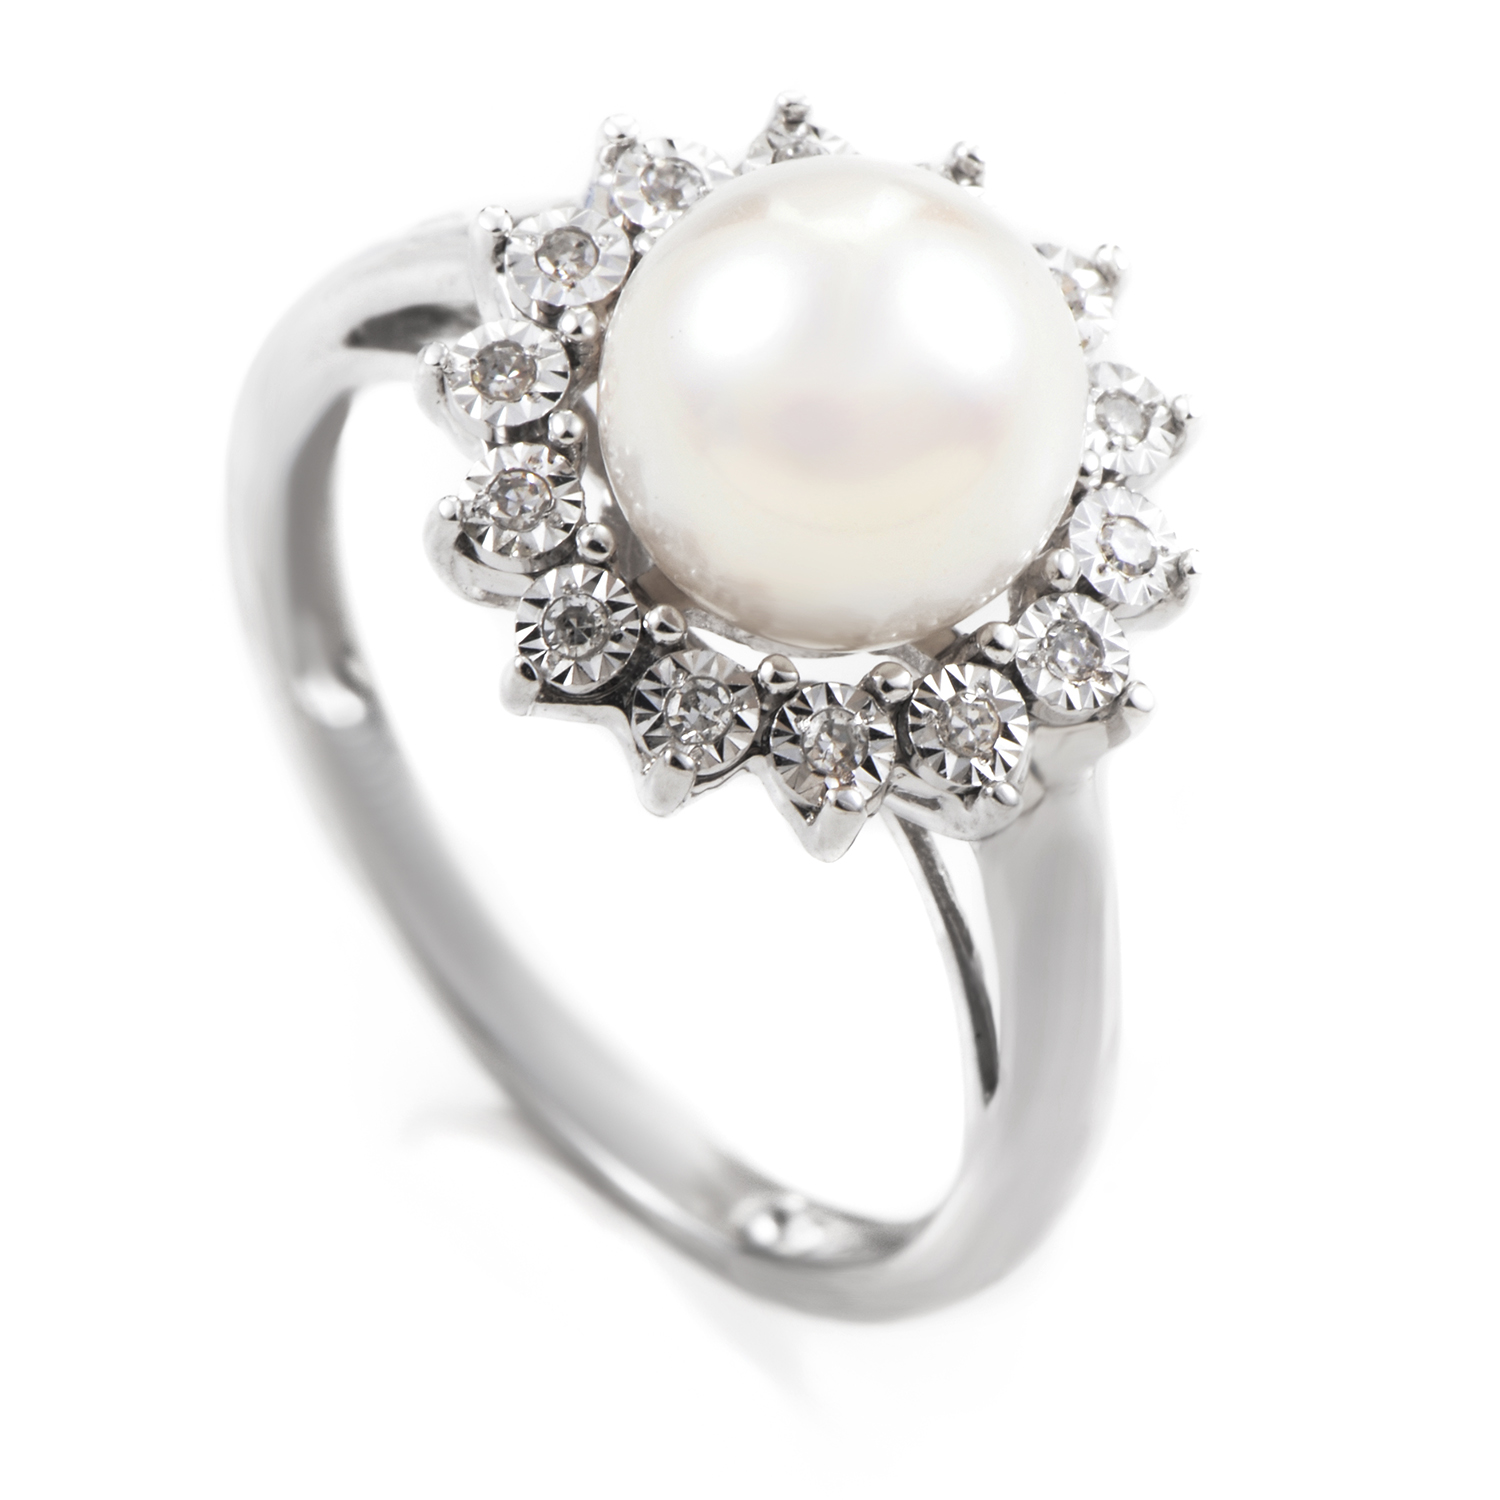 14K White Gold Diamond and Pearl Ring PSB06-011214